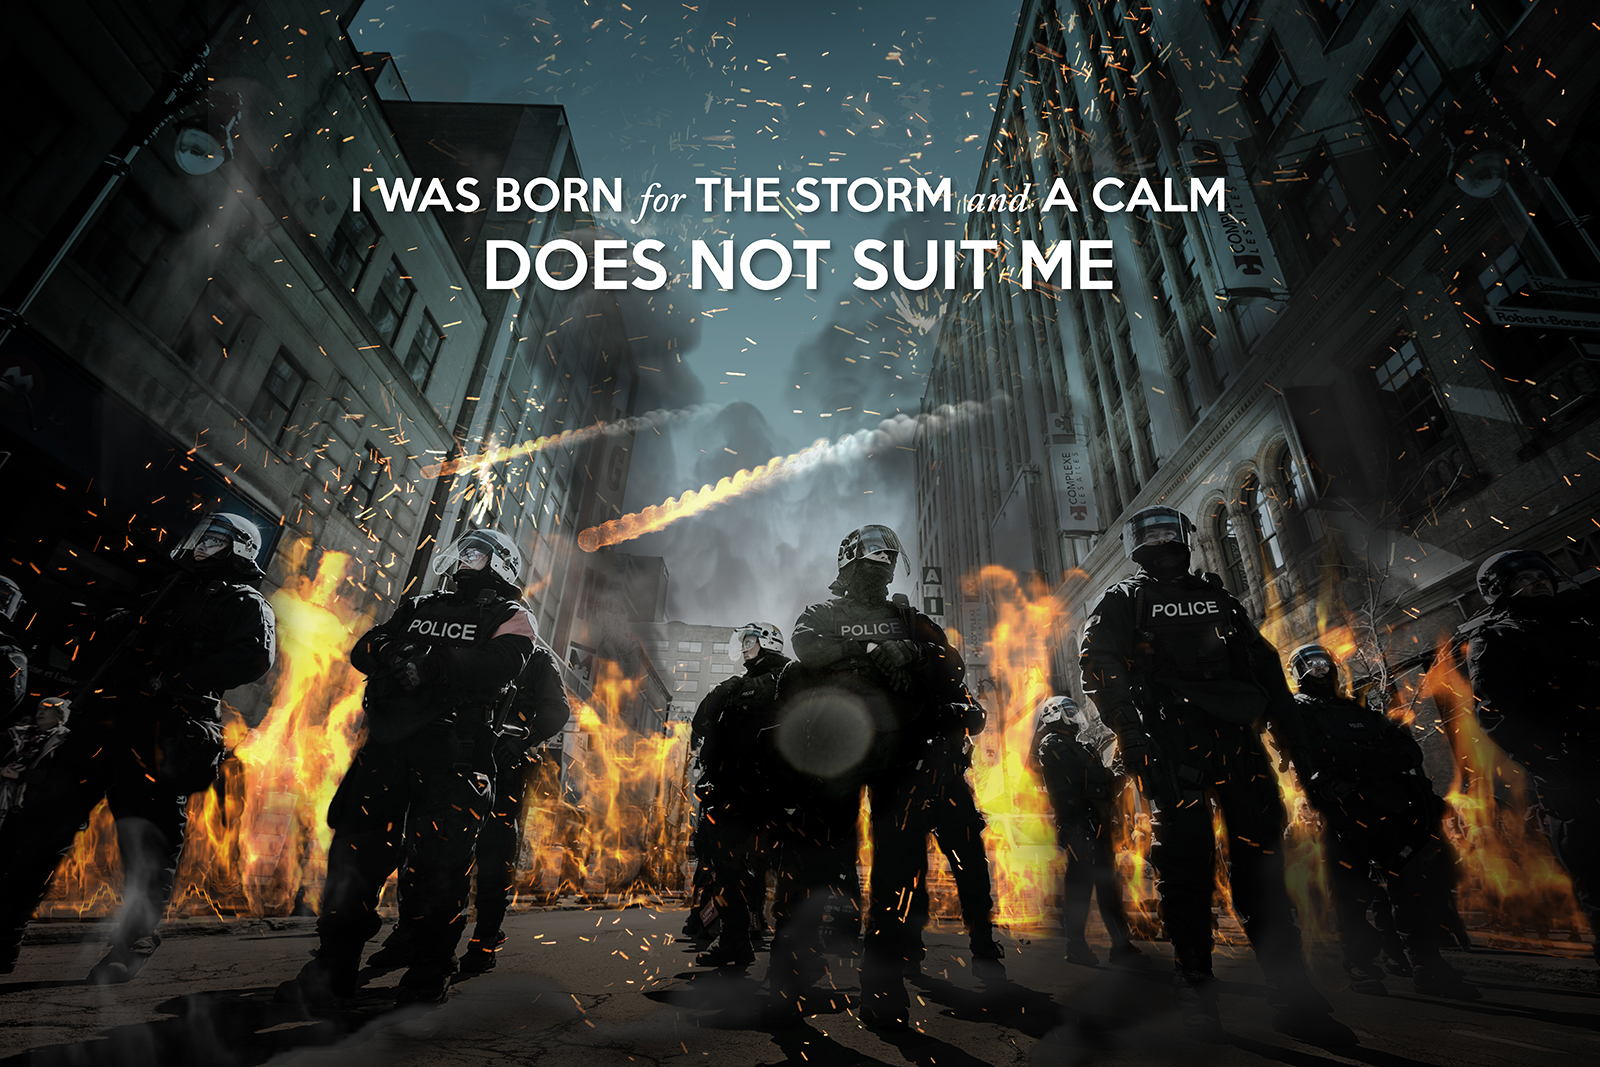 Police Riot Squad Motivation Poster